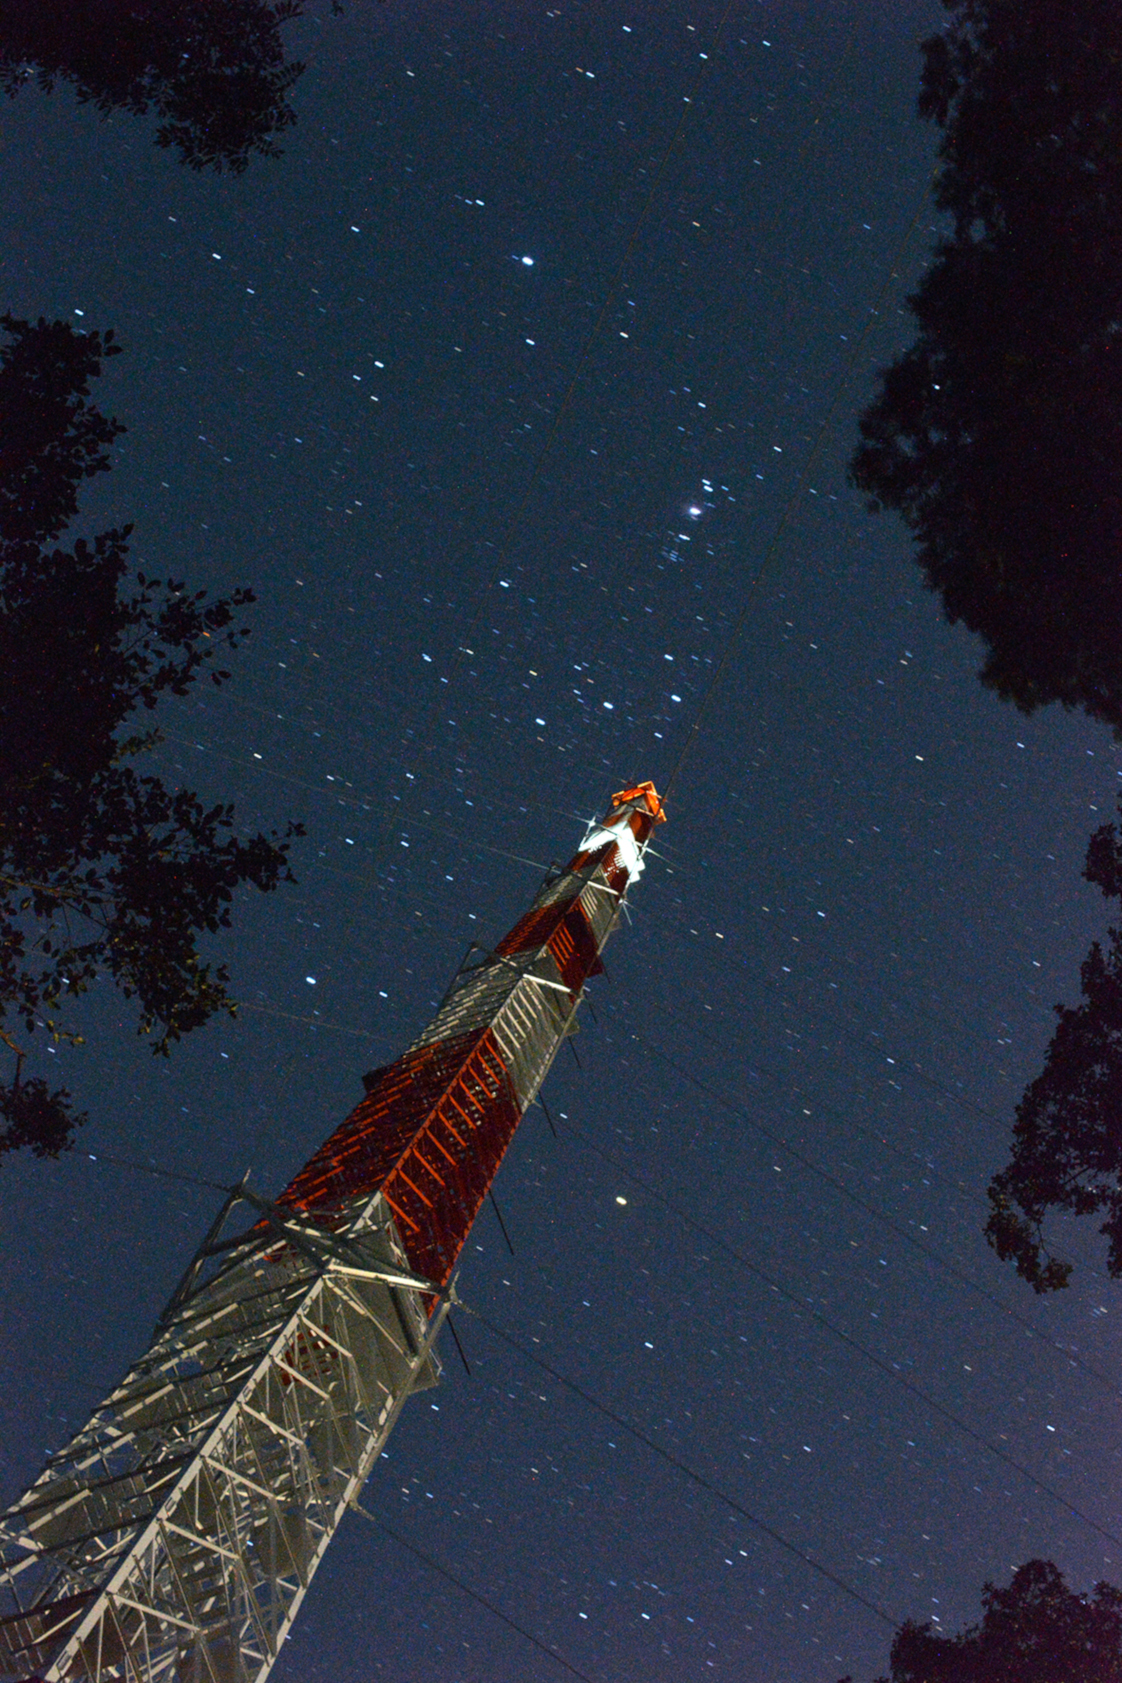 A starry night at ATTO. © Andrew Crozier / MPI-C